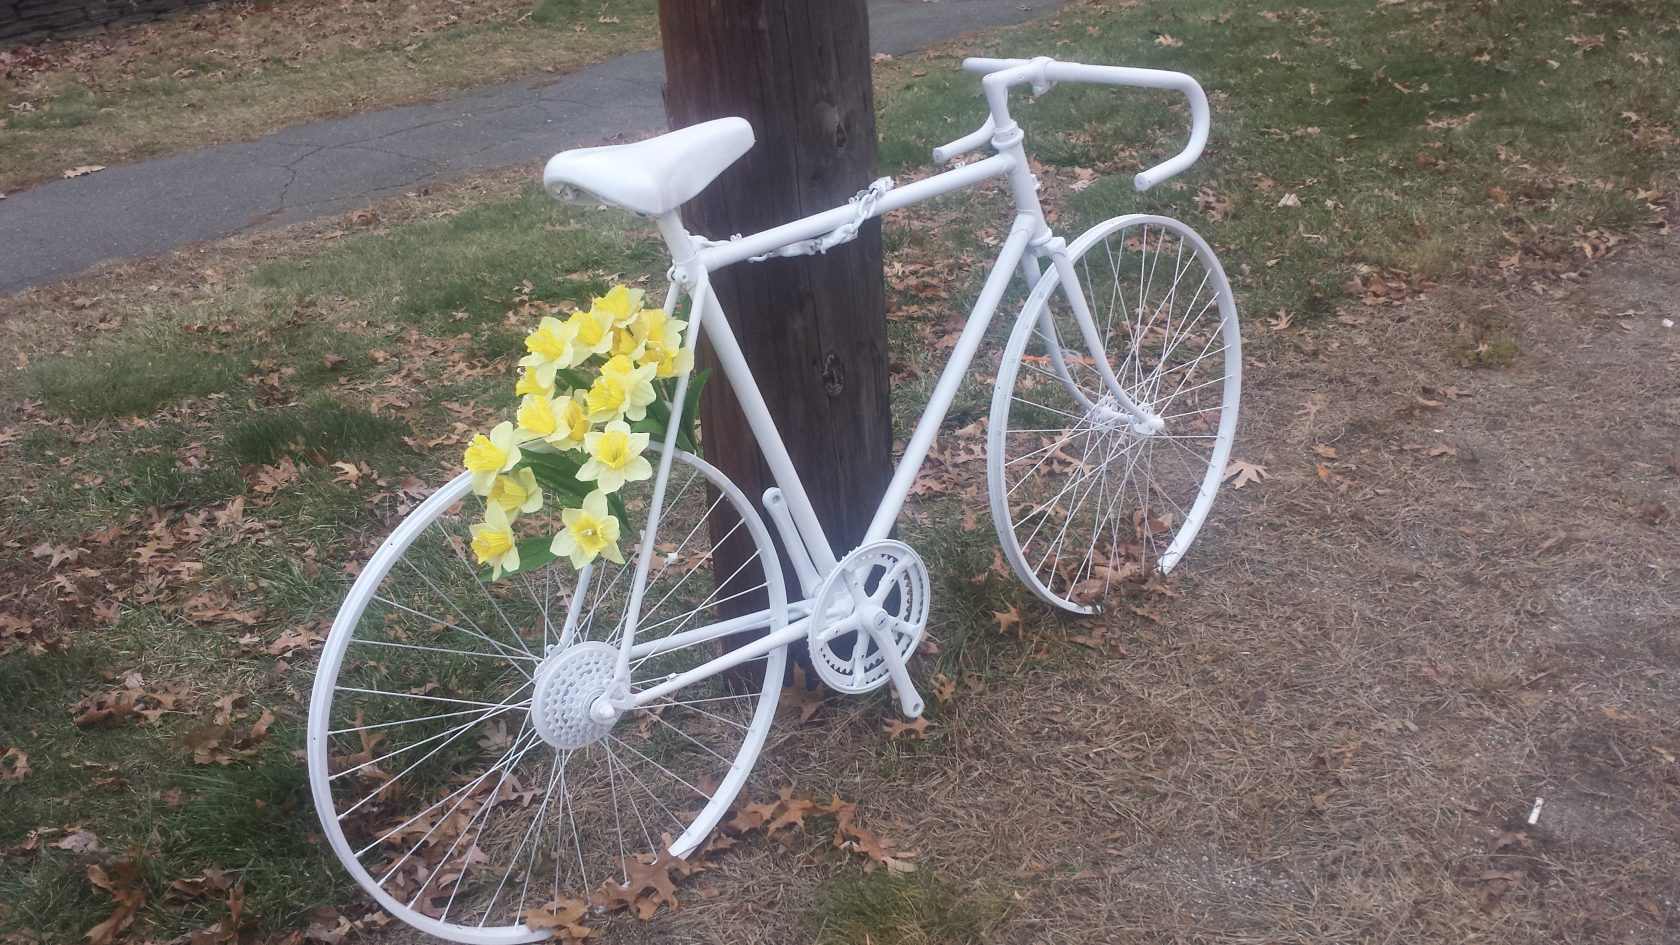 Ghost bike shows dangers that still exist in city for cyclists